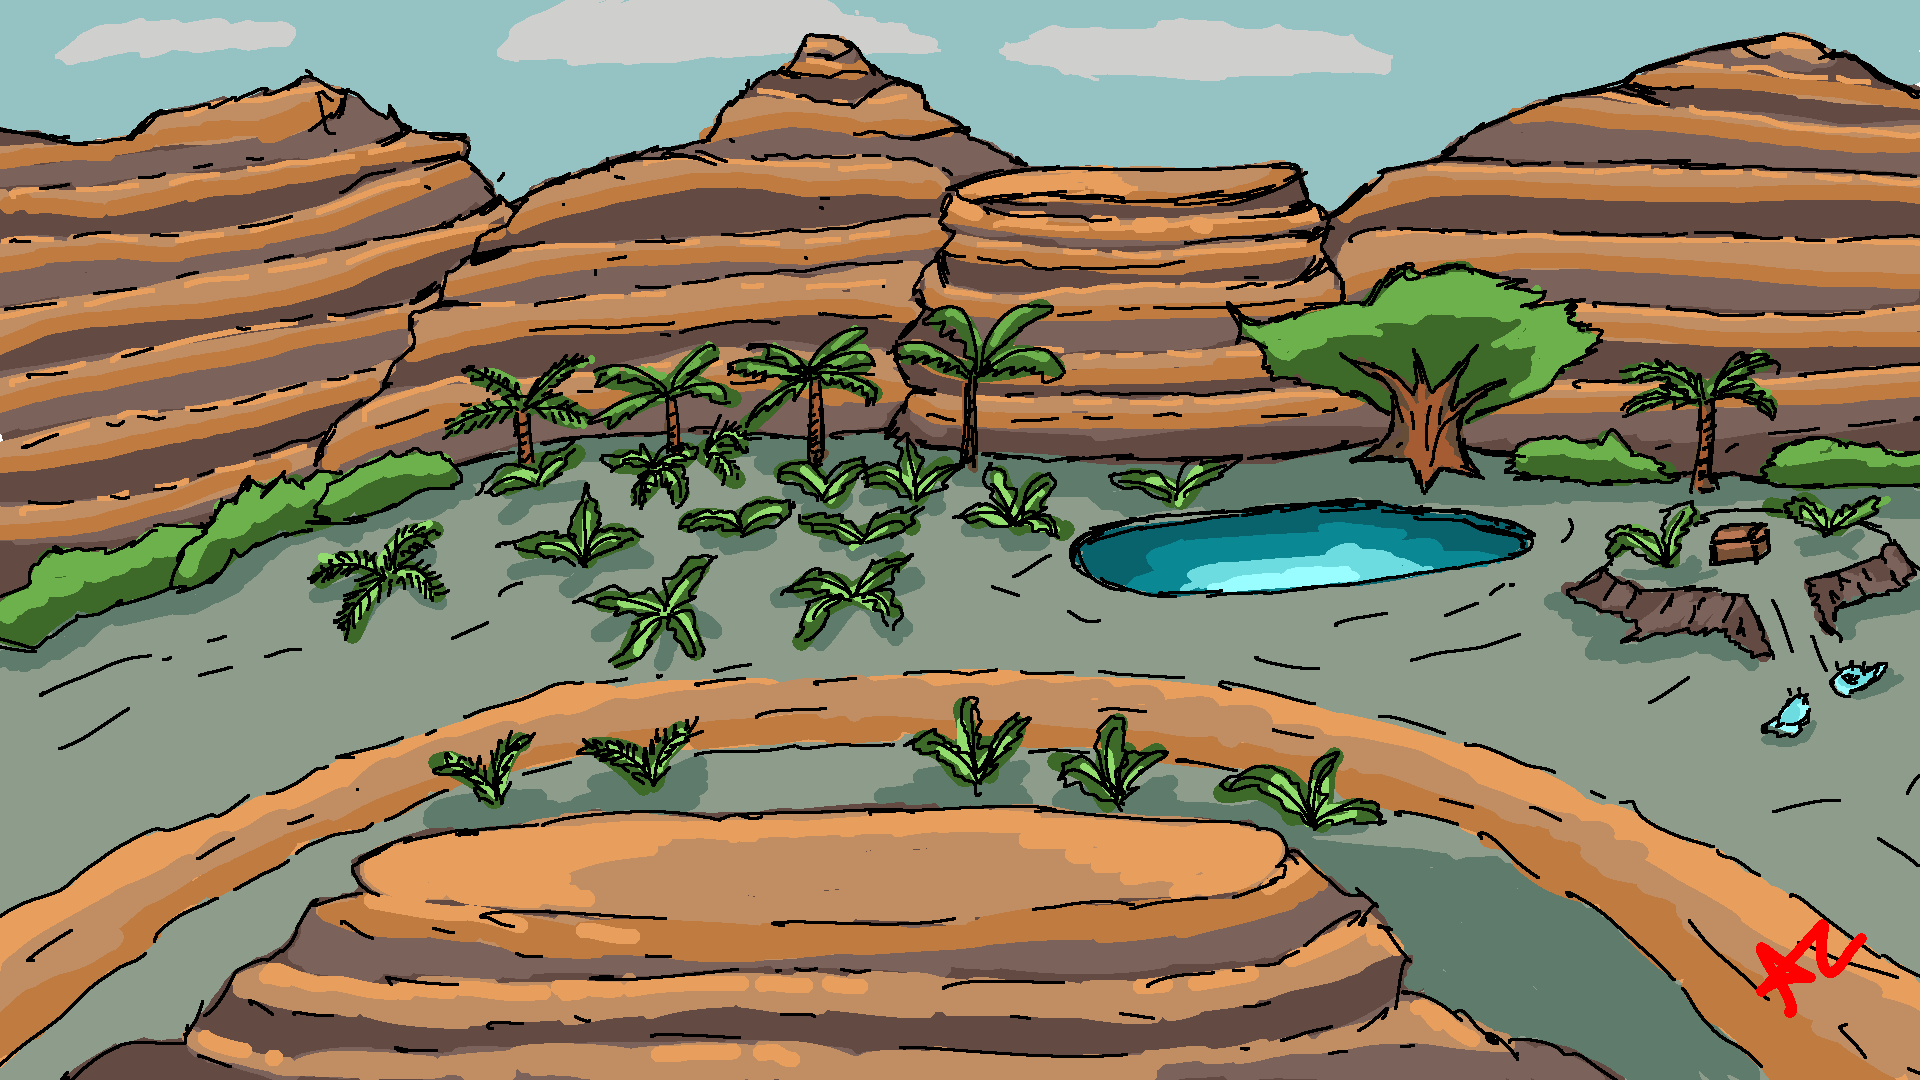 002_MountainLakeRegionElevatedView.png